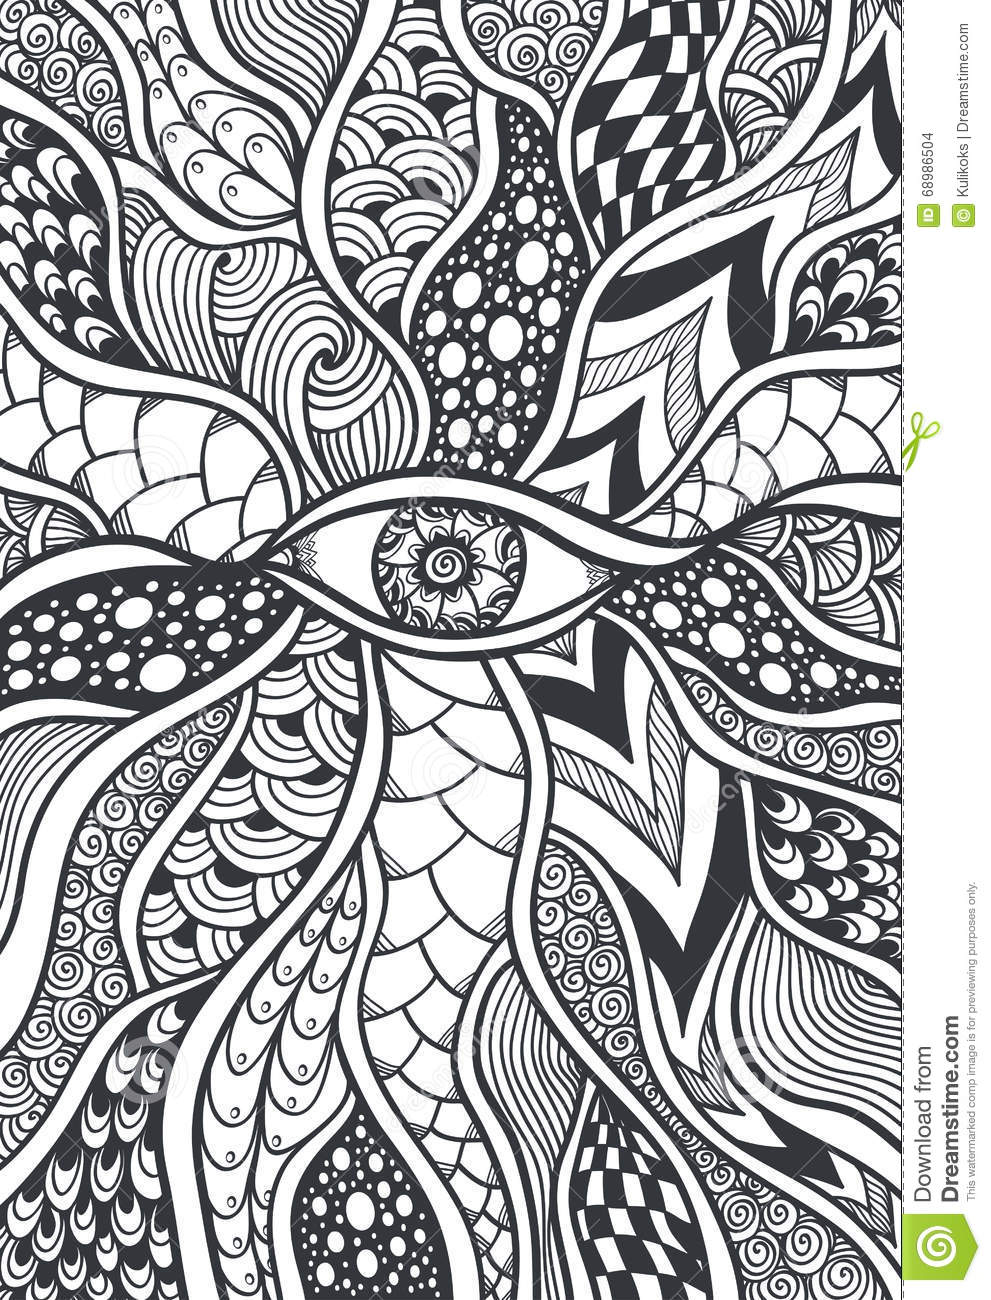 Zen Doodle Or Zen Tangle Texture Or Pattern With Eye Black On